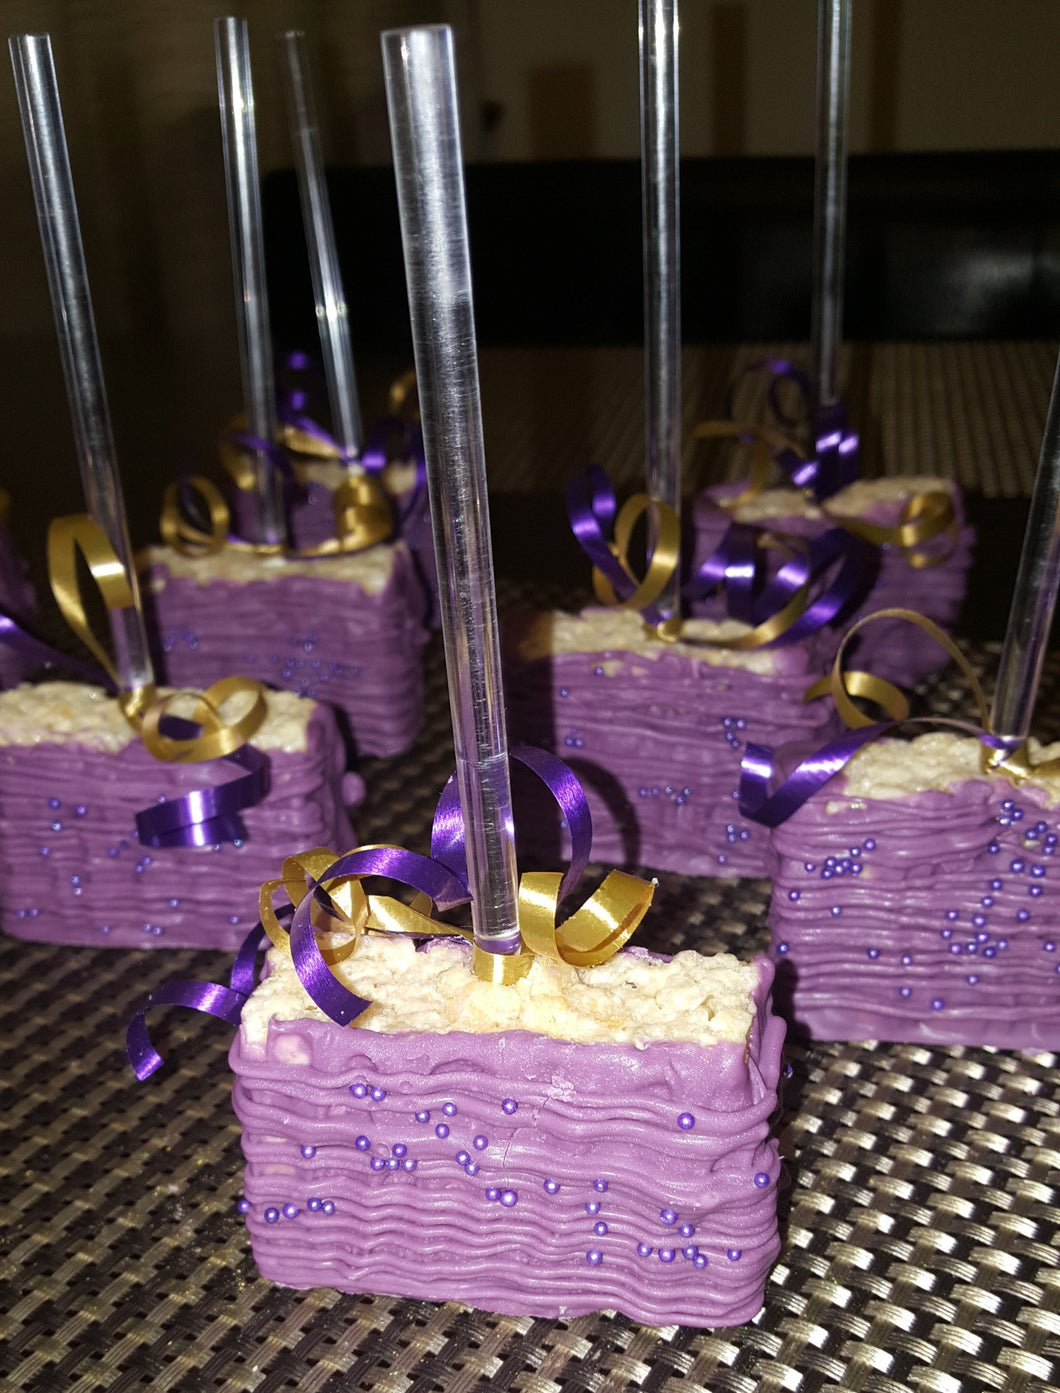 Rice Krispie Treats - Chocolate Covered/Dipped (Purple)